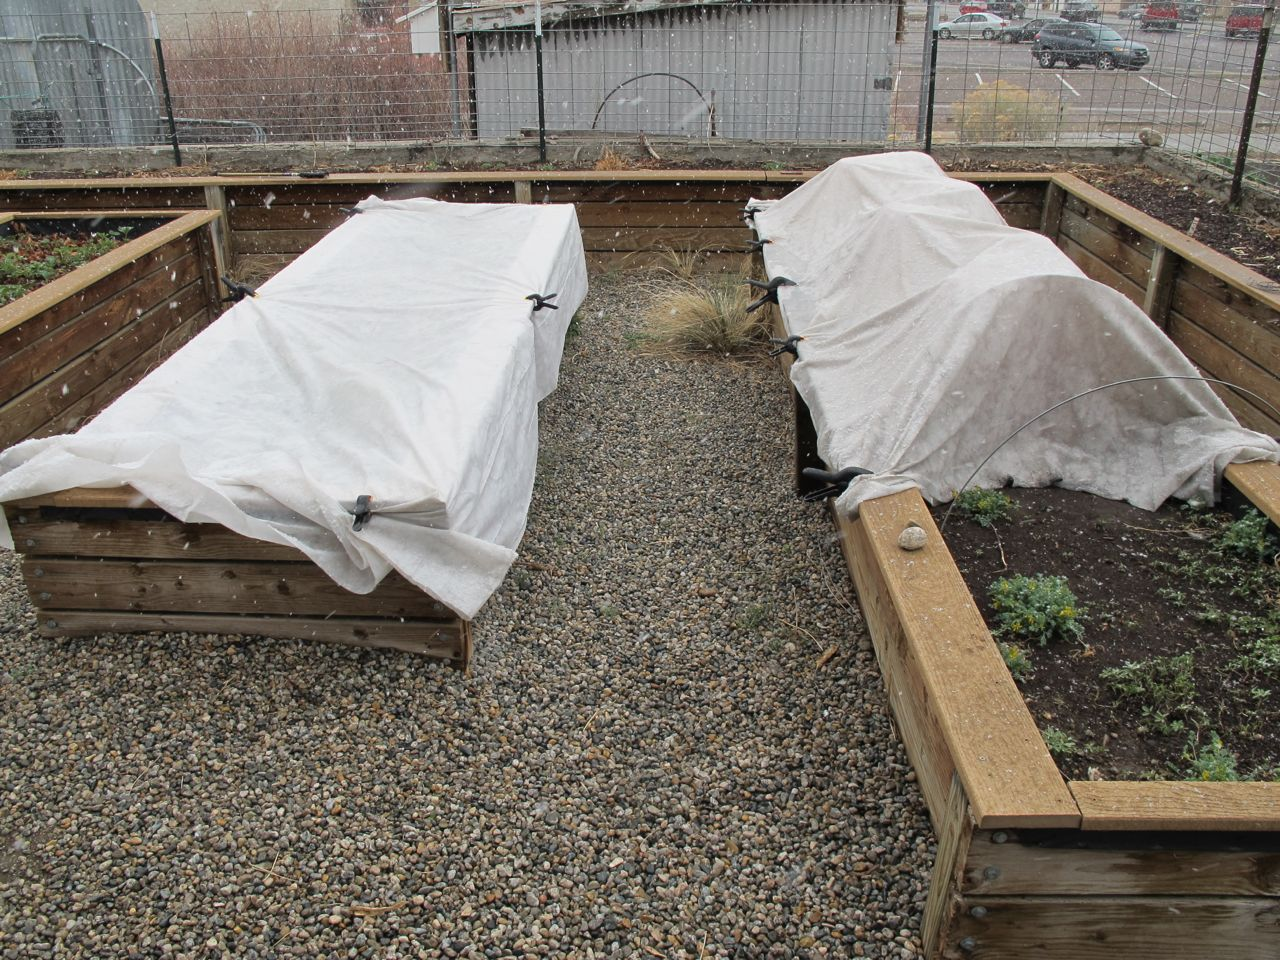 Under the right-hand row cover are the tomatoes in their insulating teepees. Under the left are greens.